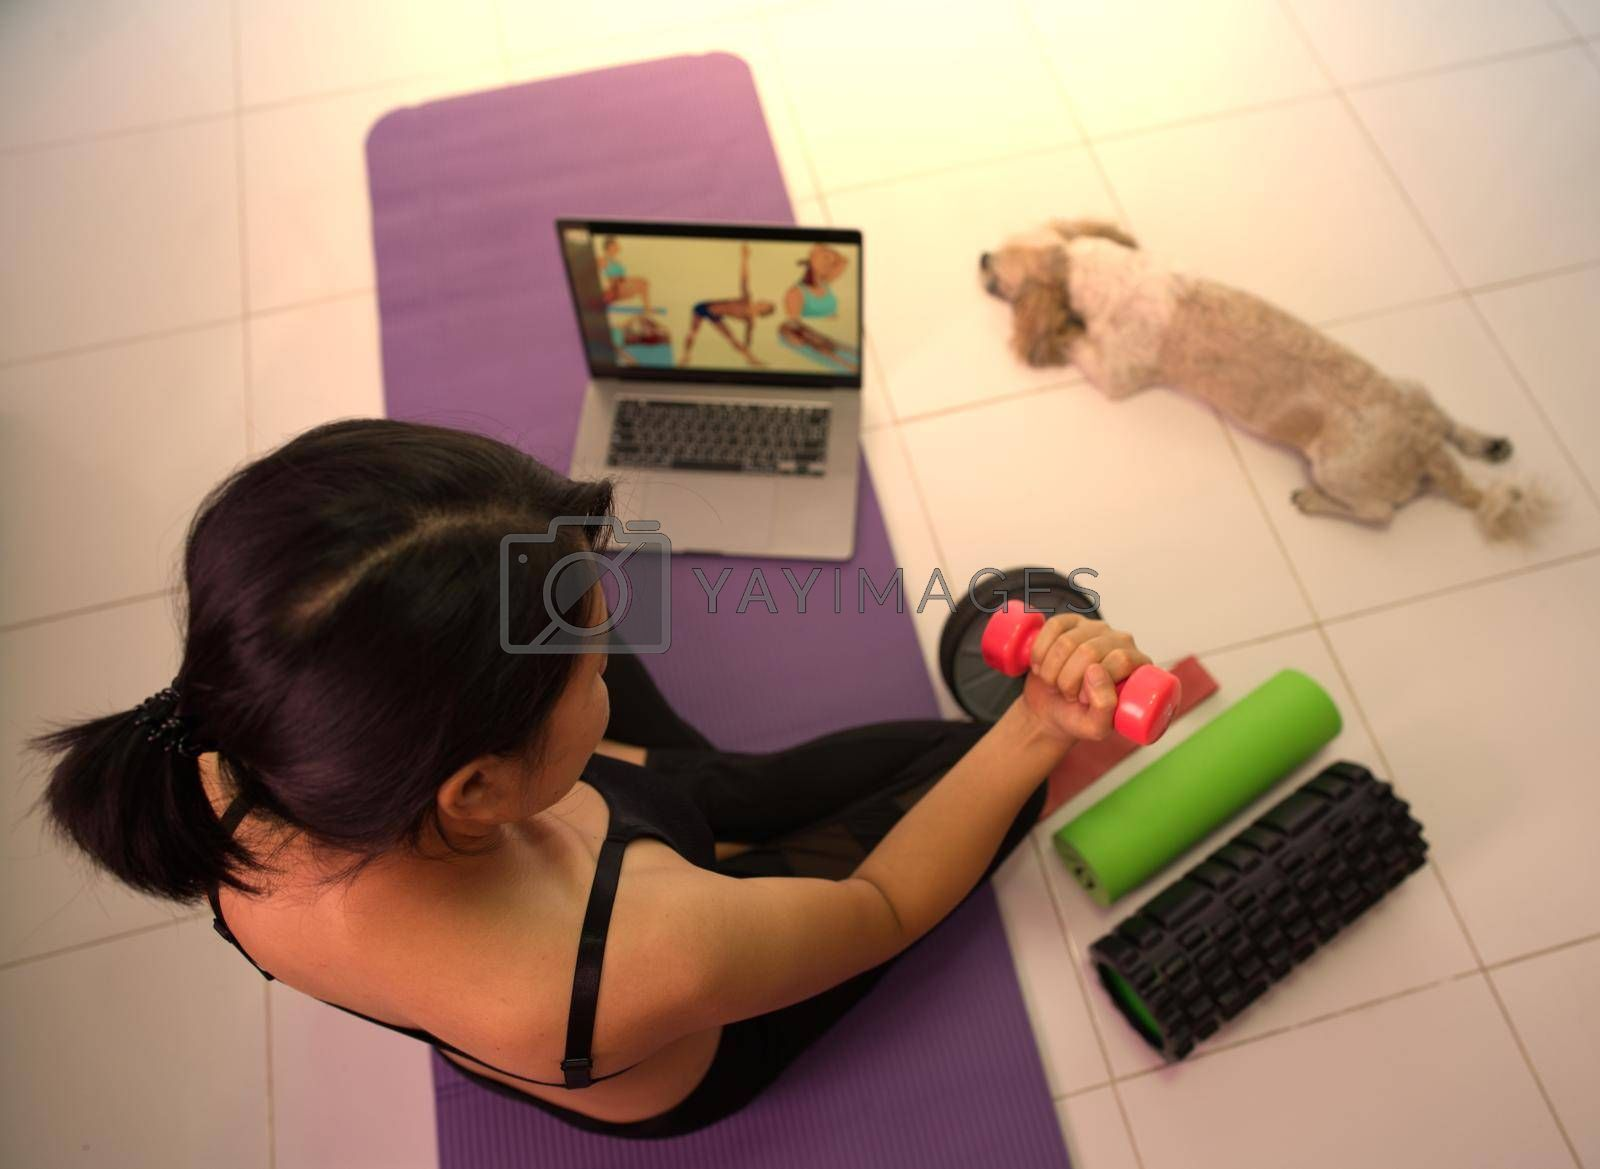 Asian woman training to lift pink dumbbells for building muscle, concept of staying healthy by weight loss and recreation at their own residence.